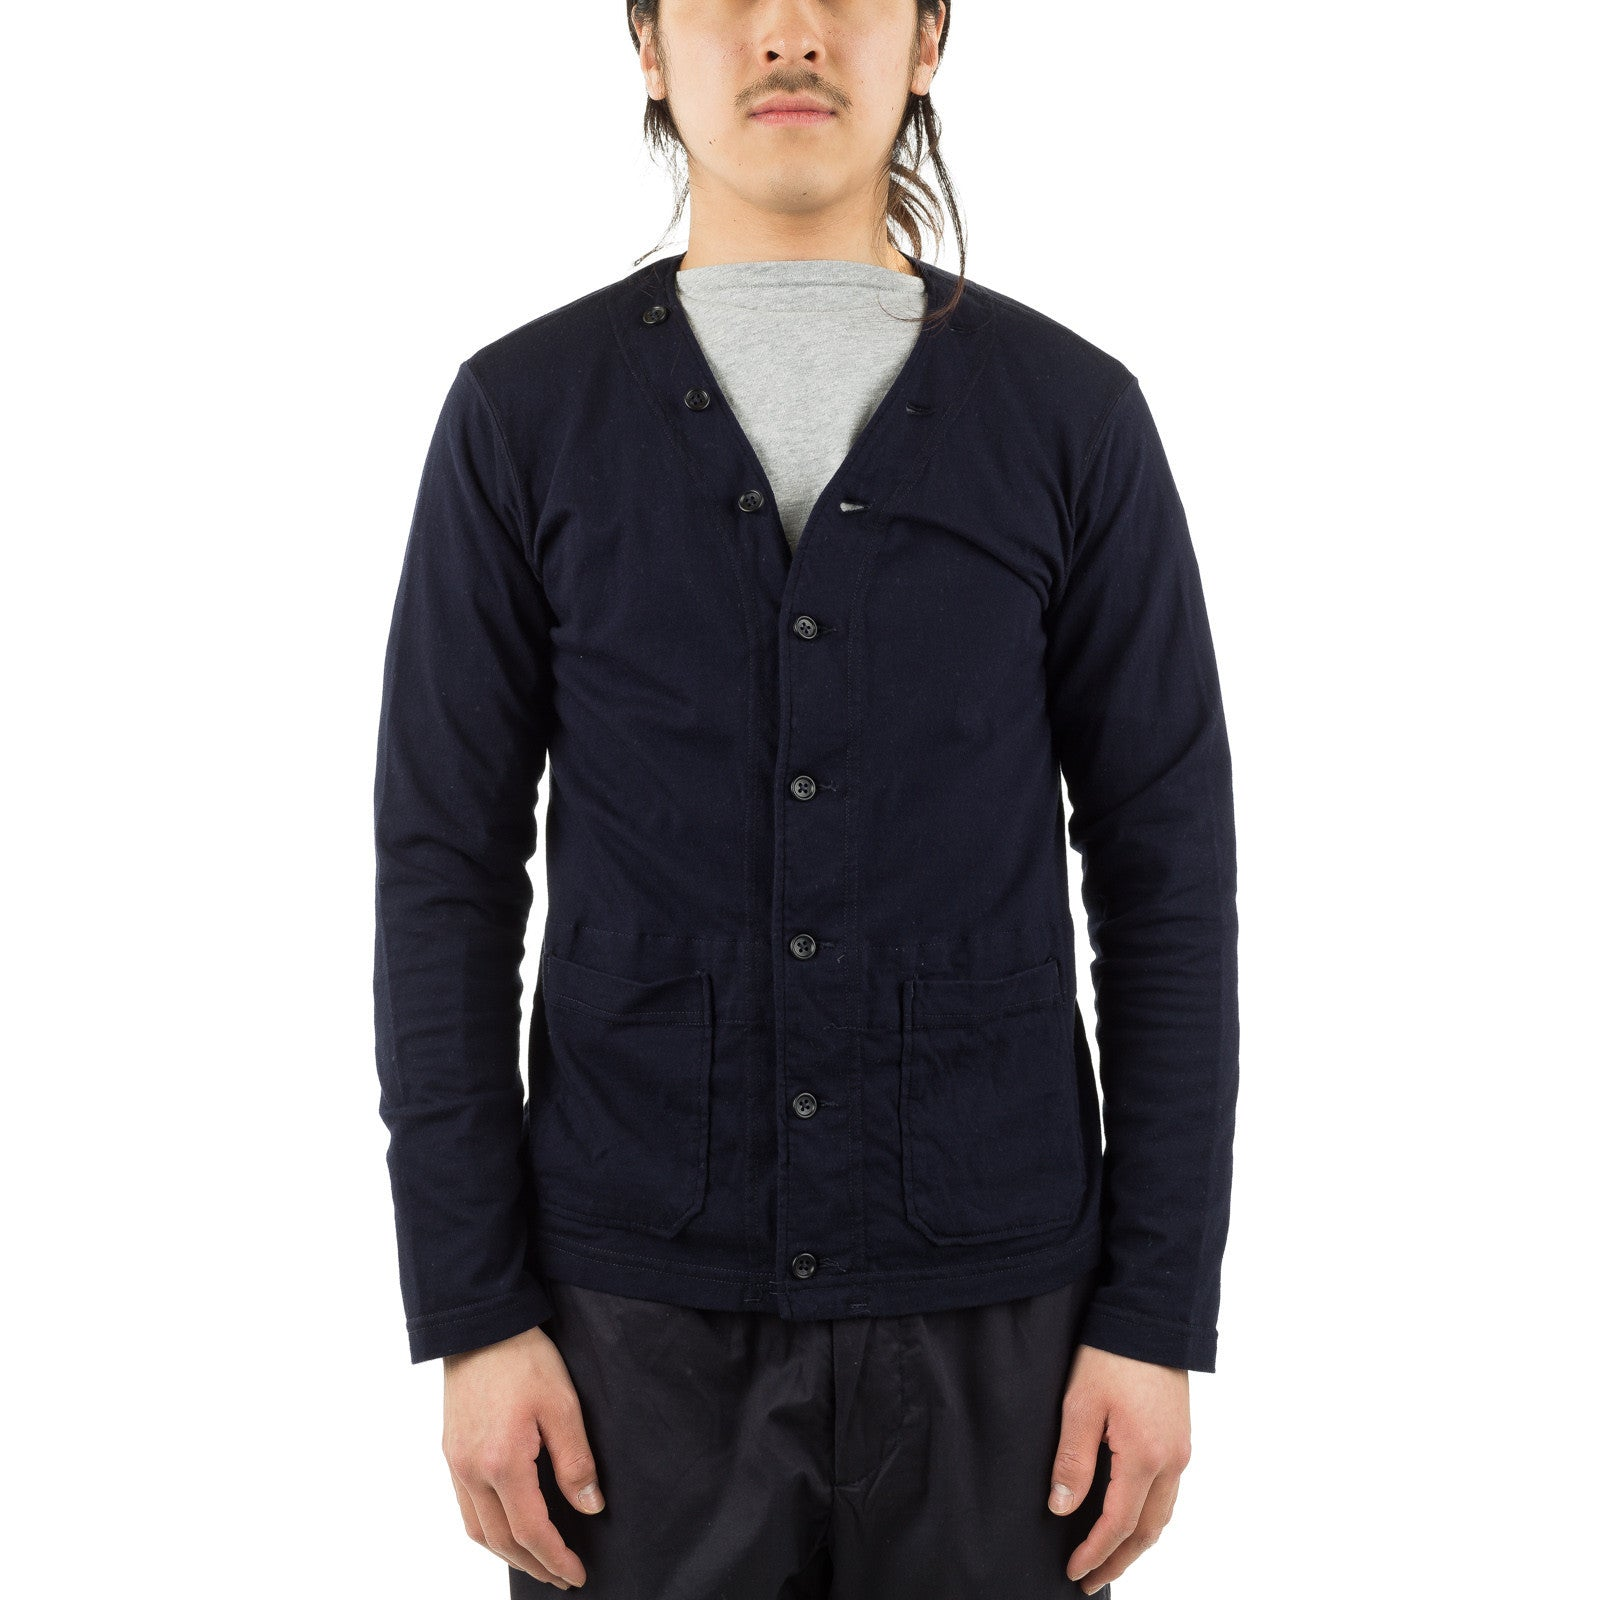 Knit Cardigan Solid Jersey Dark Navy